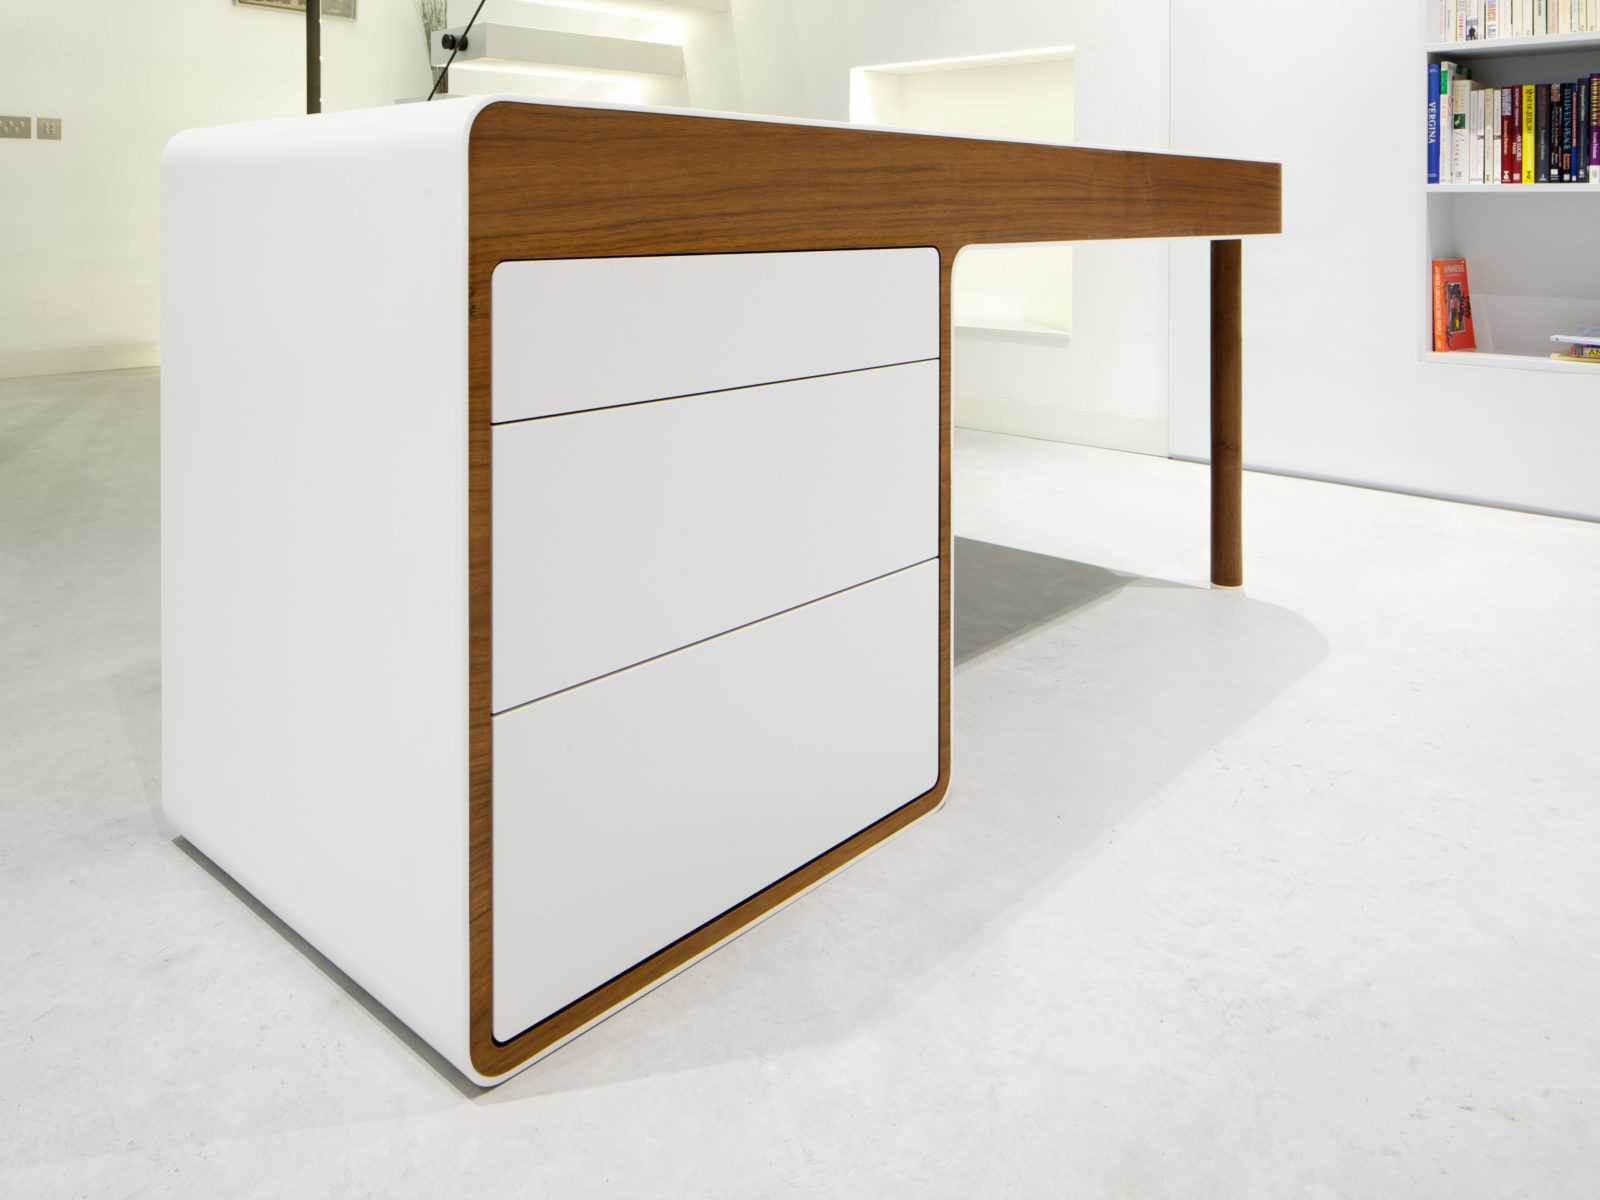 Corian curved desk with handleless drawers